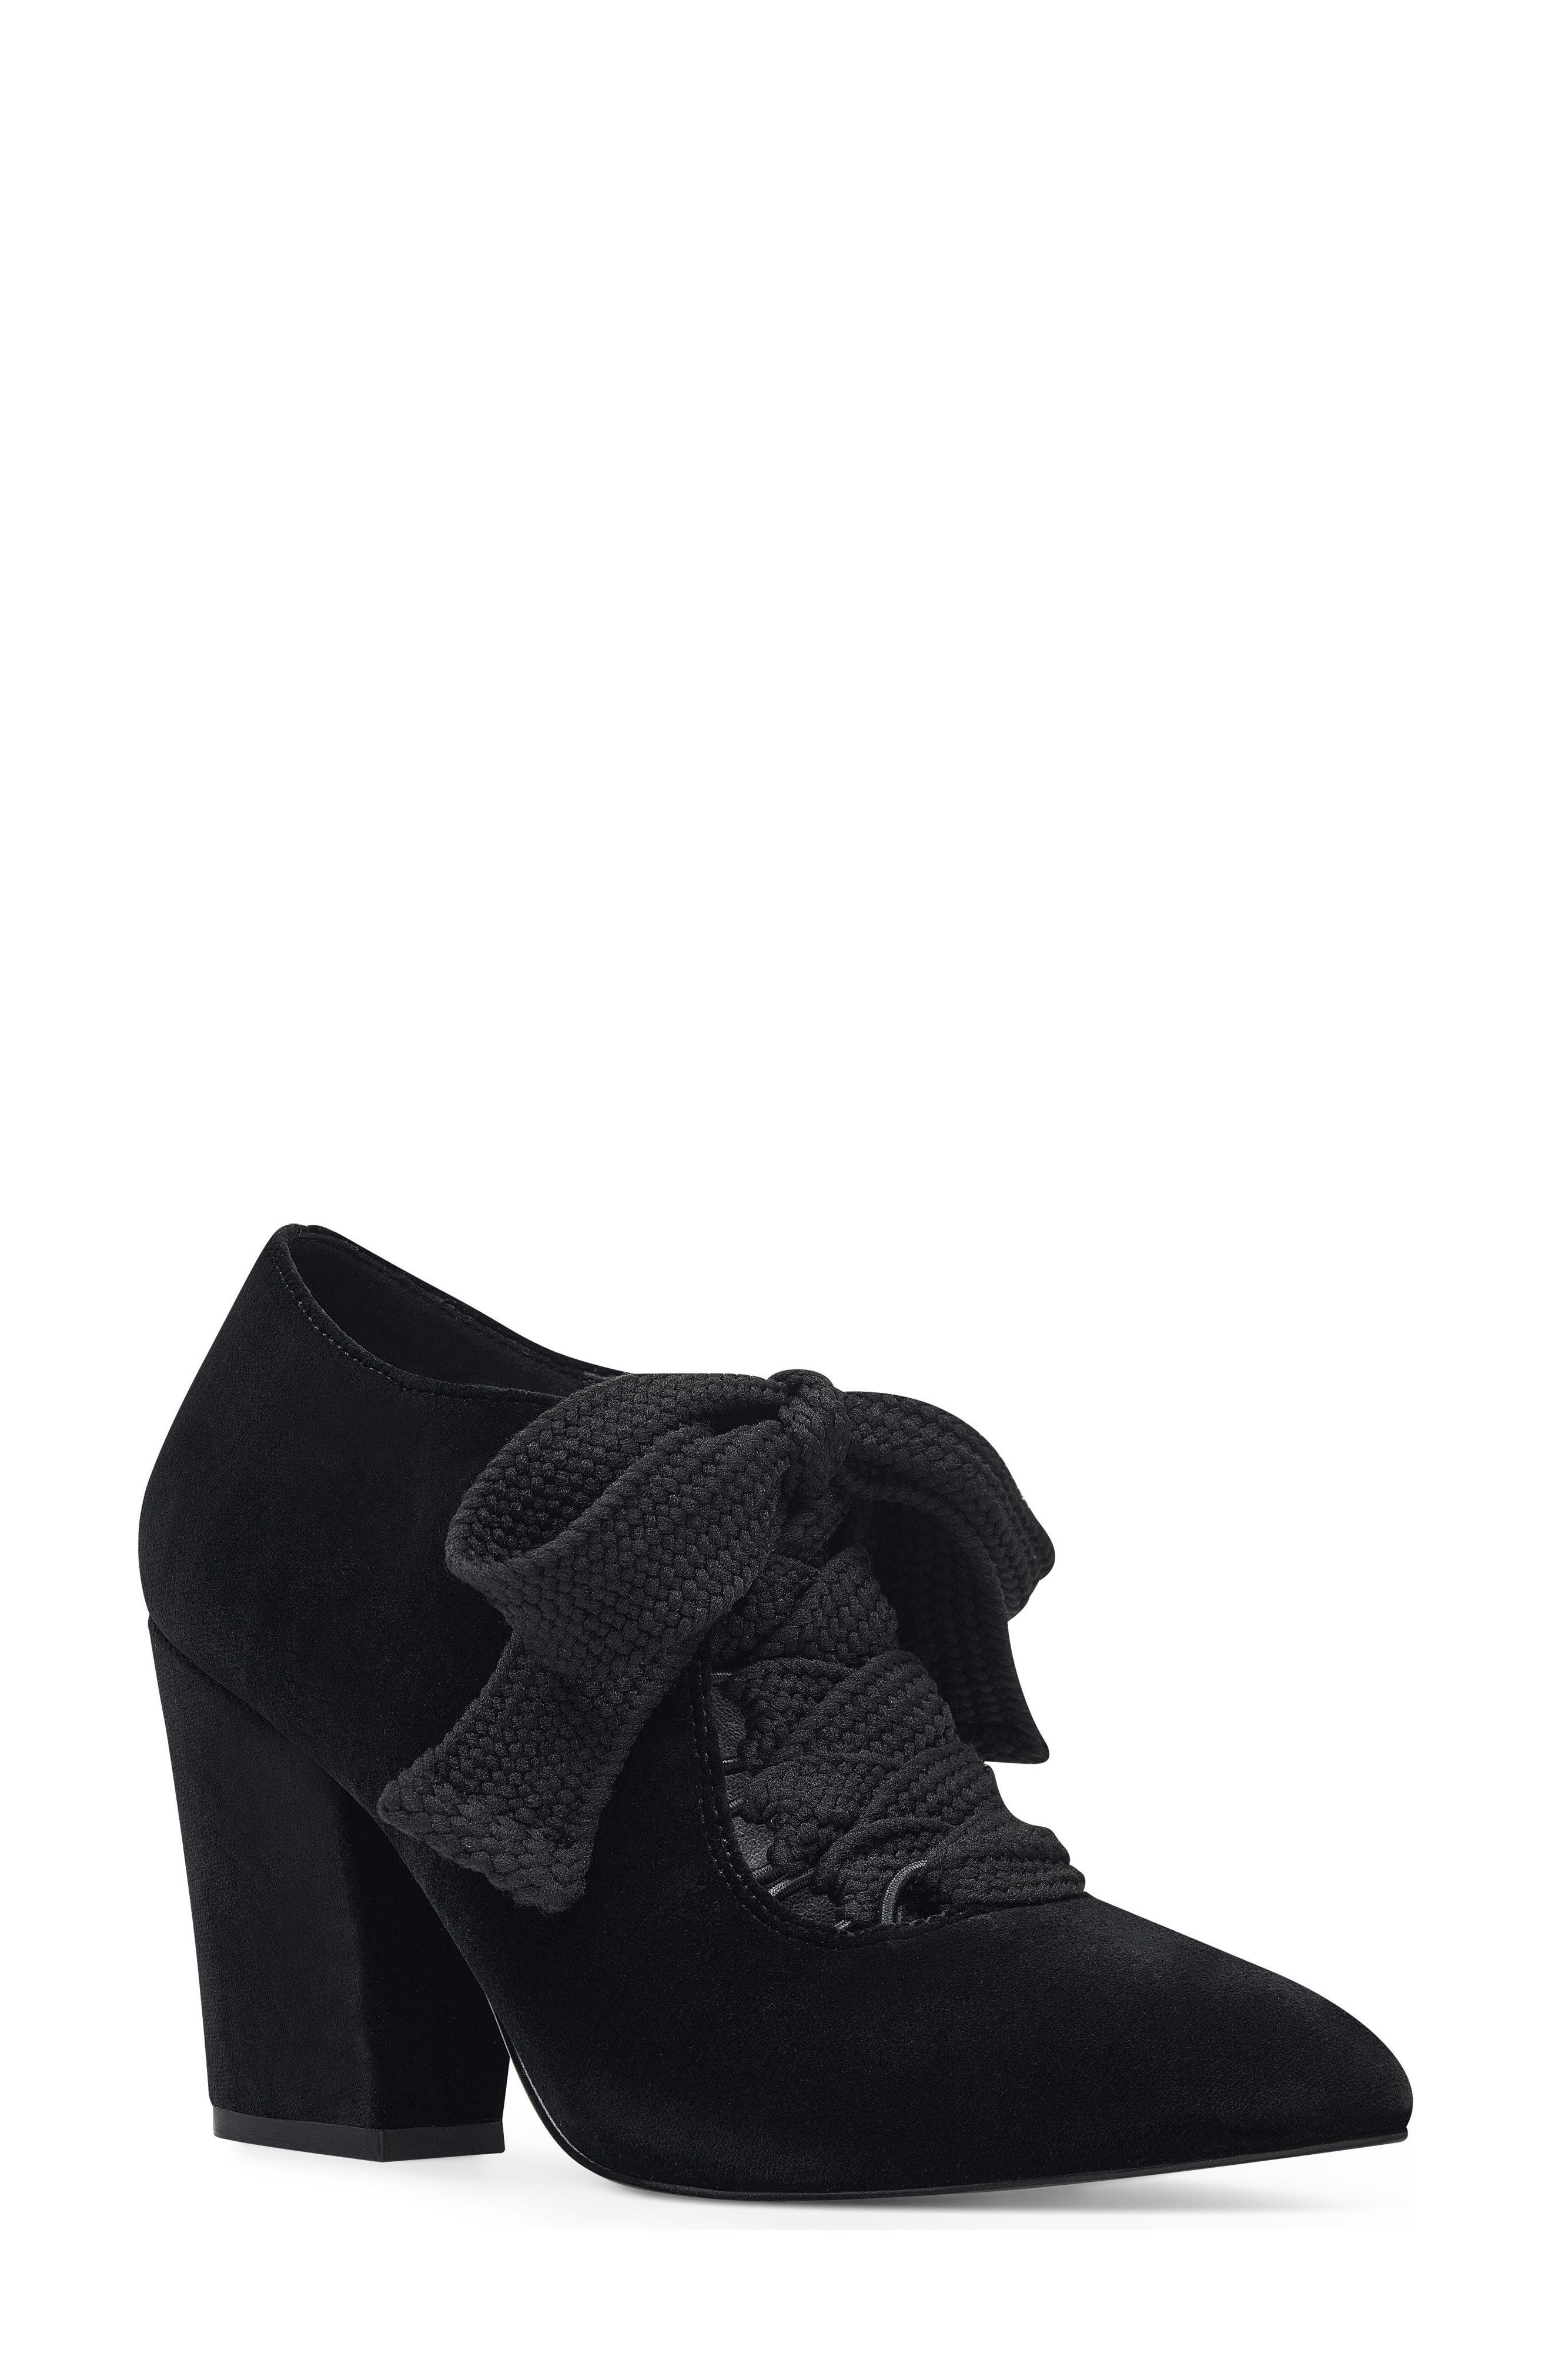 Sweeorn Lace-Up Bootie,                         Main,                         color, 009